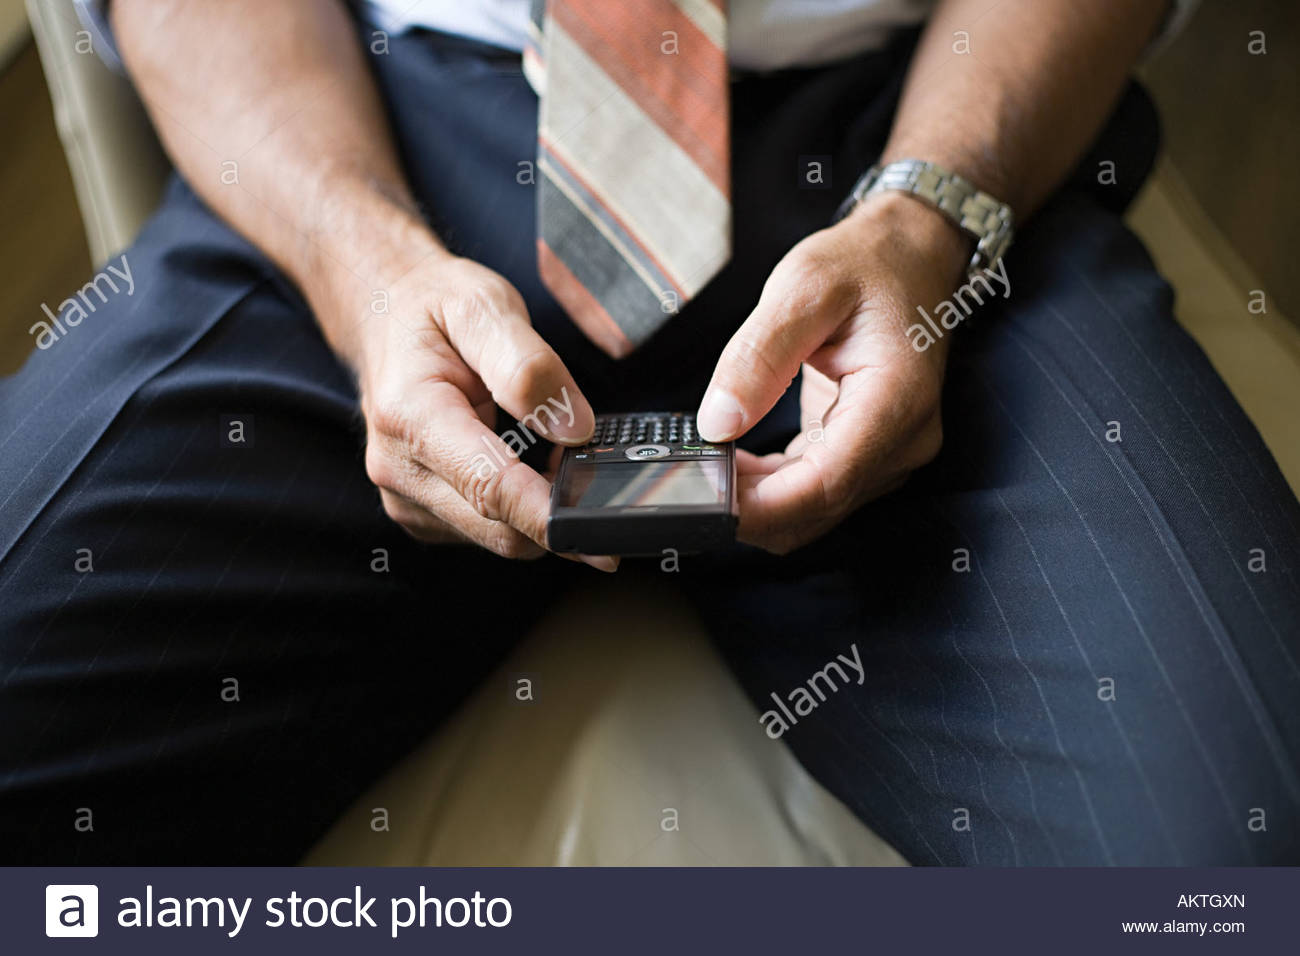 Man with handheld computer - Stock Image